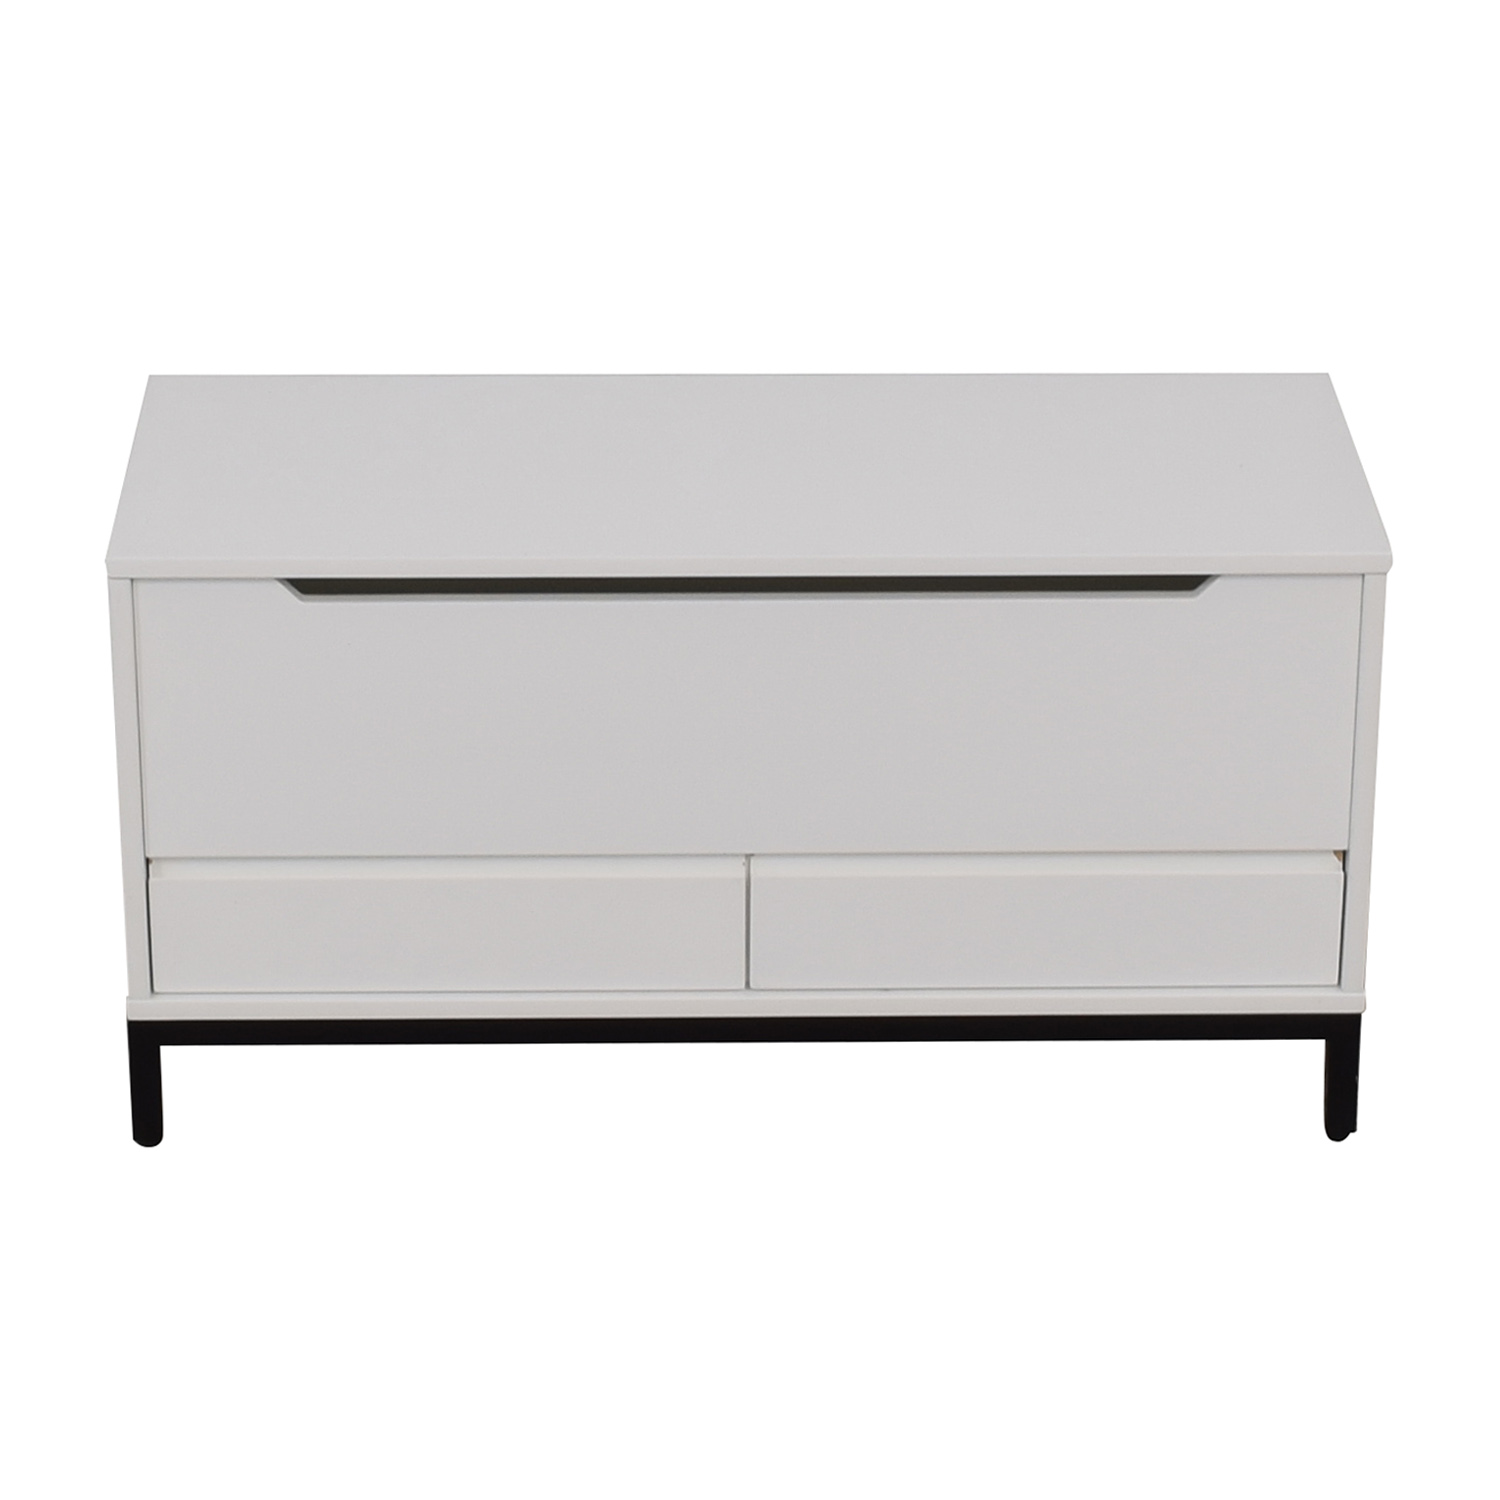 shop Land of Nod White Two-Drawer Storage Bench Land of Nod